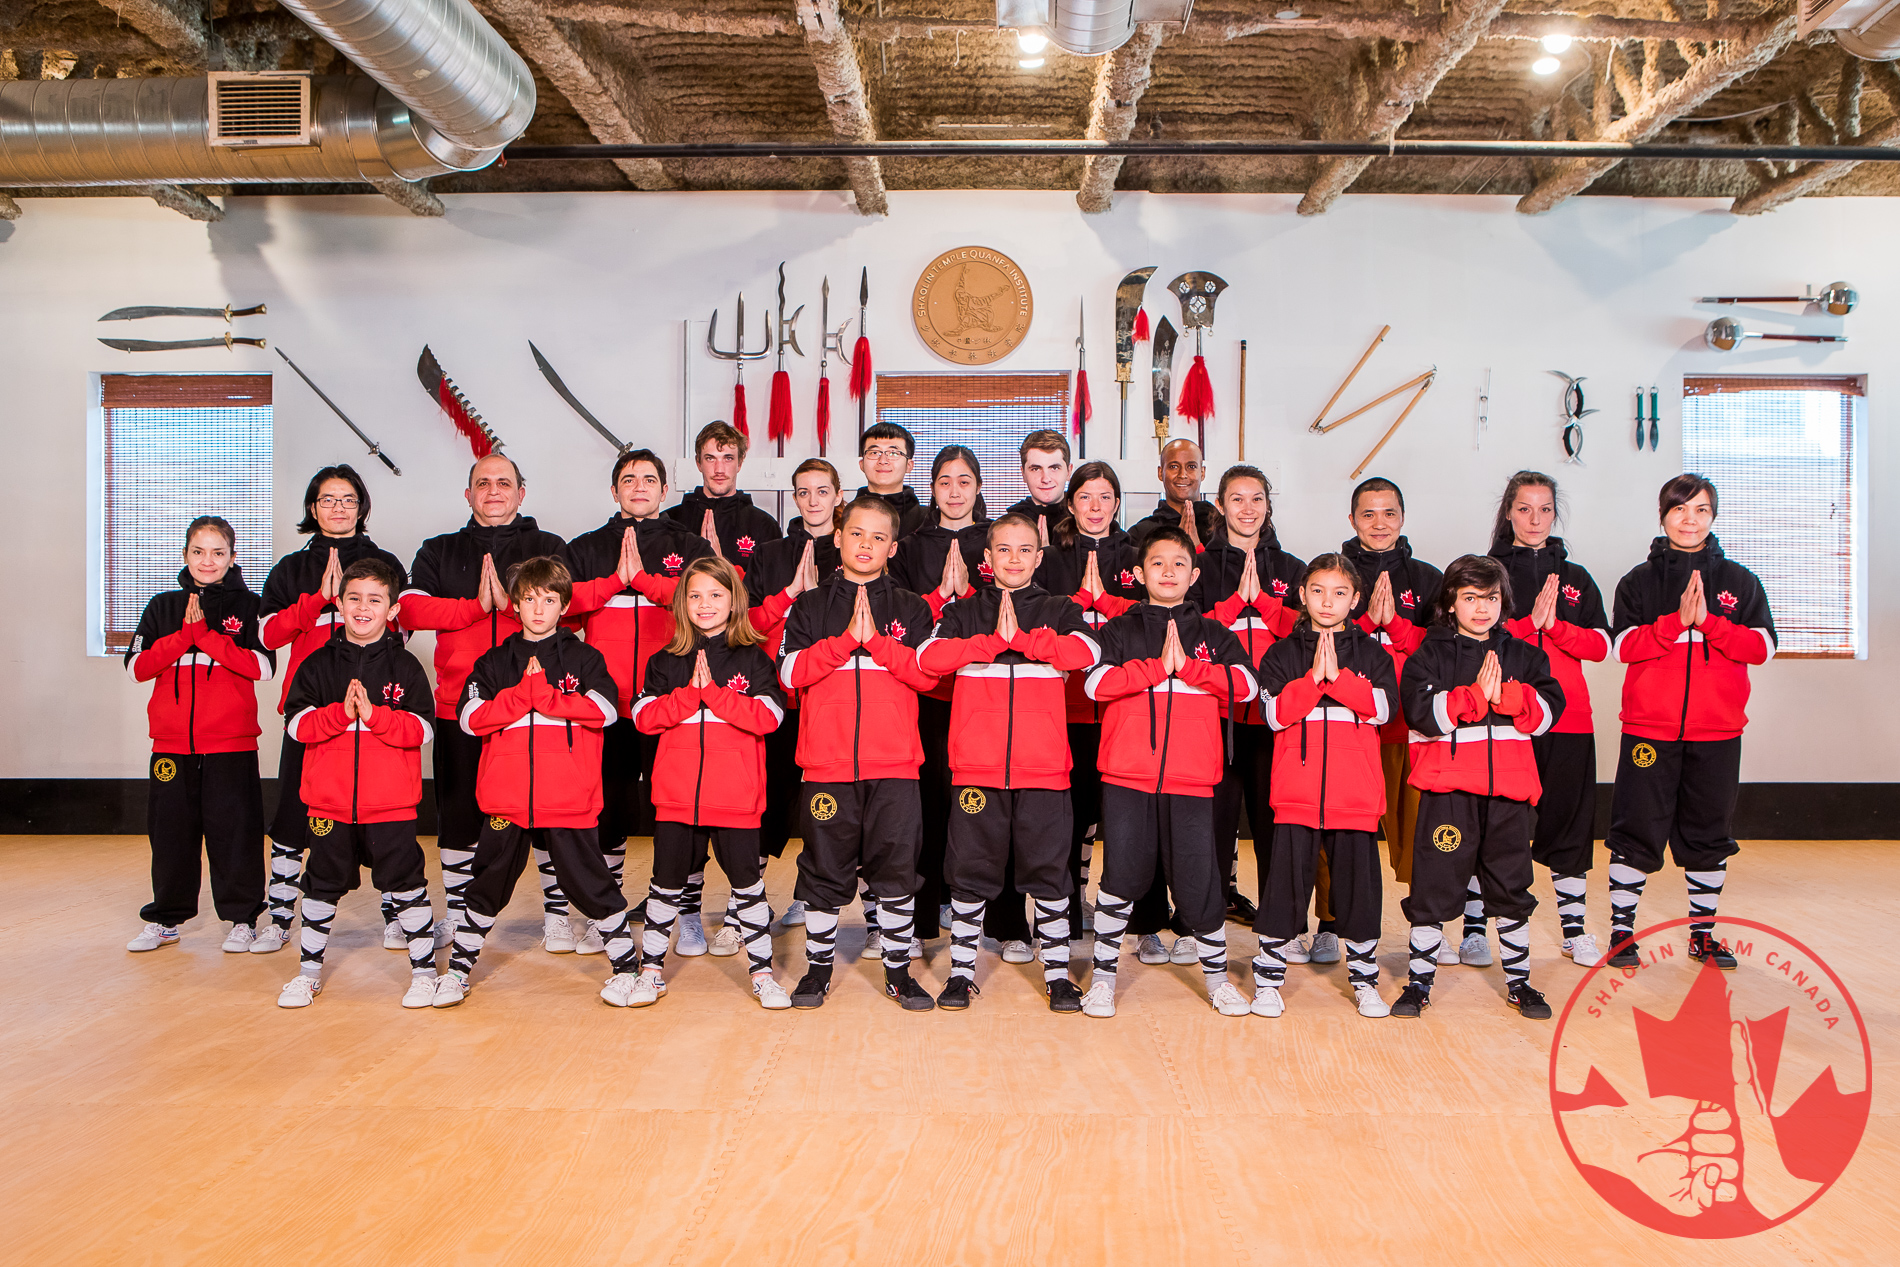 Updated: Support Shaolin Team Canada at our Fundraising Outdoor Practice – Saturday July 21st